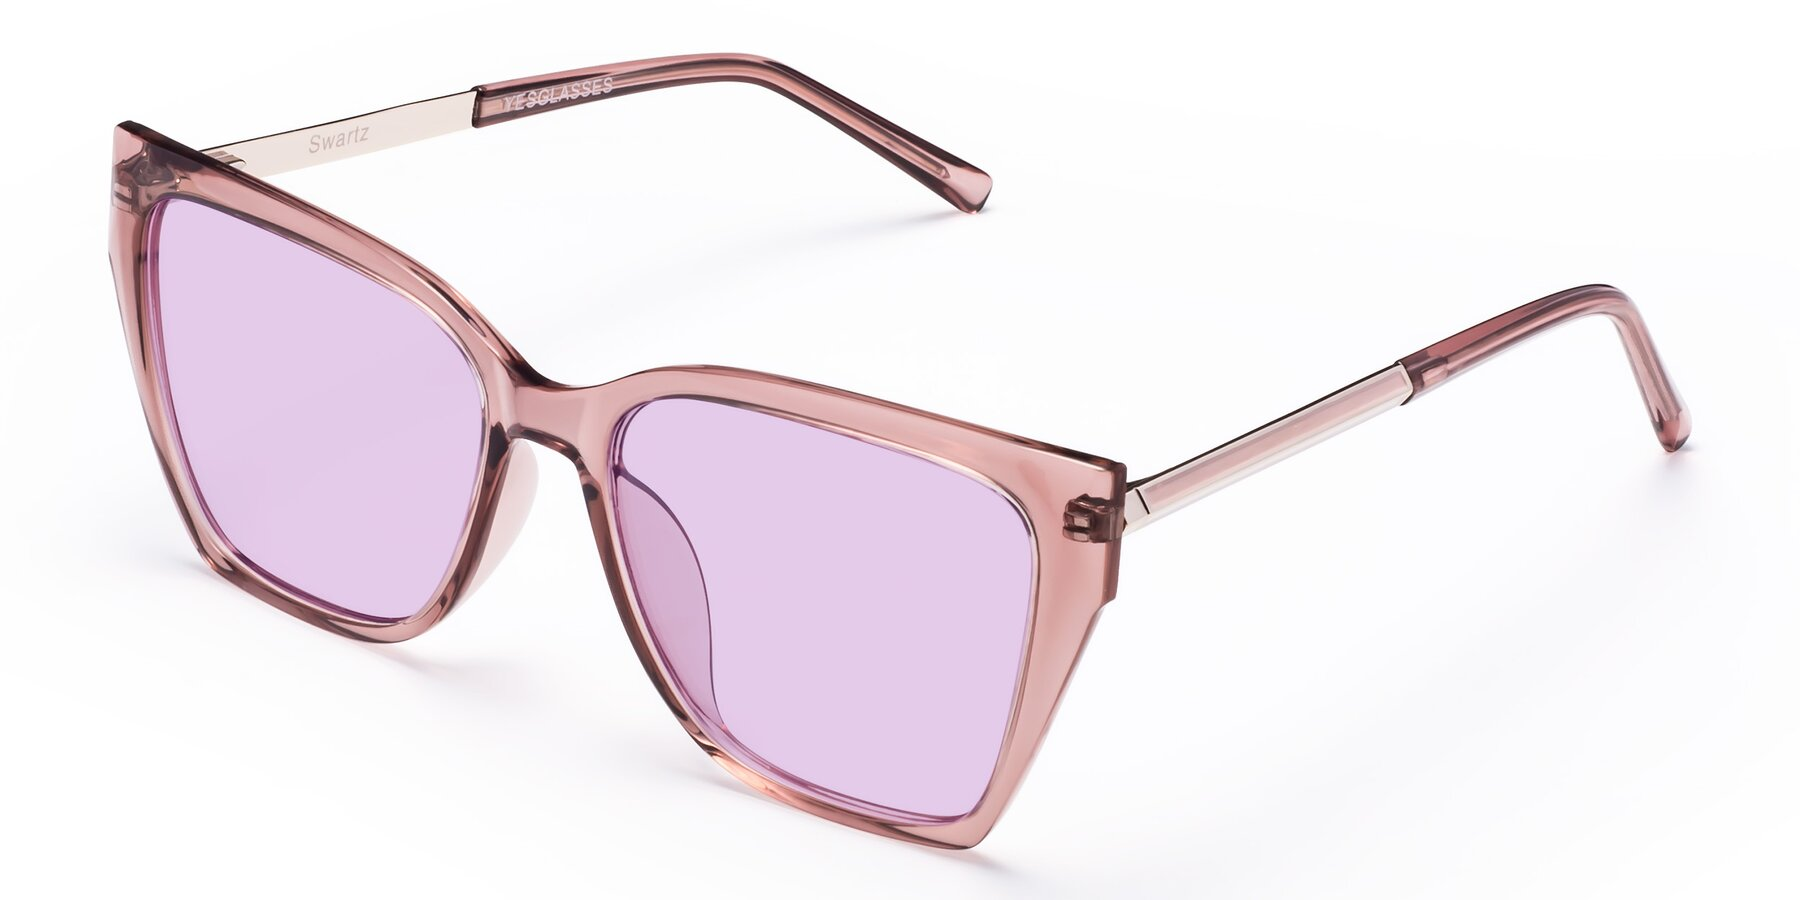 Angle of Swartz in Grape with Light Purple Tinted Lenses